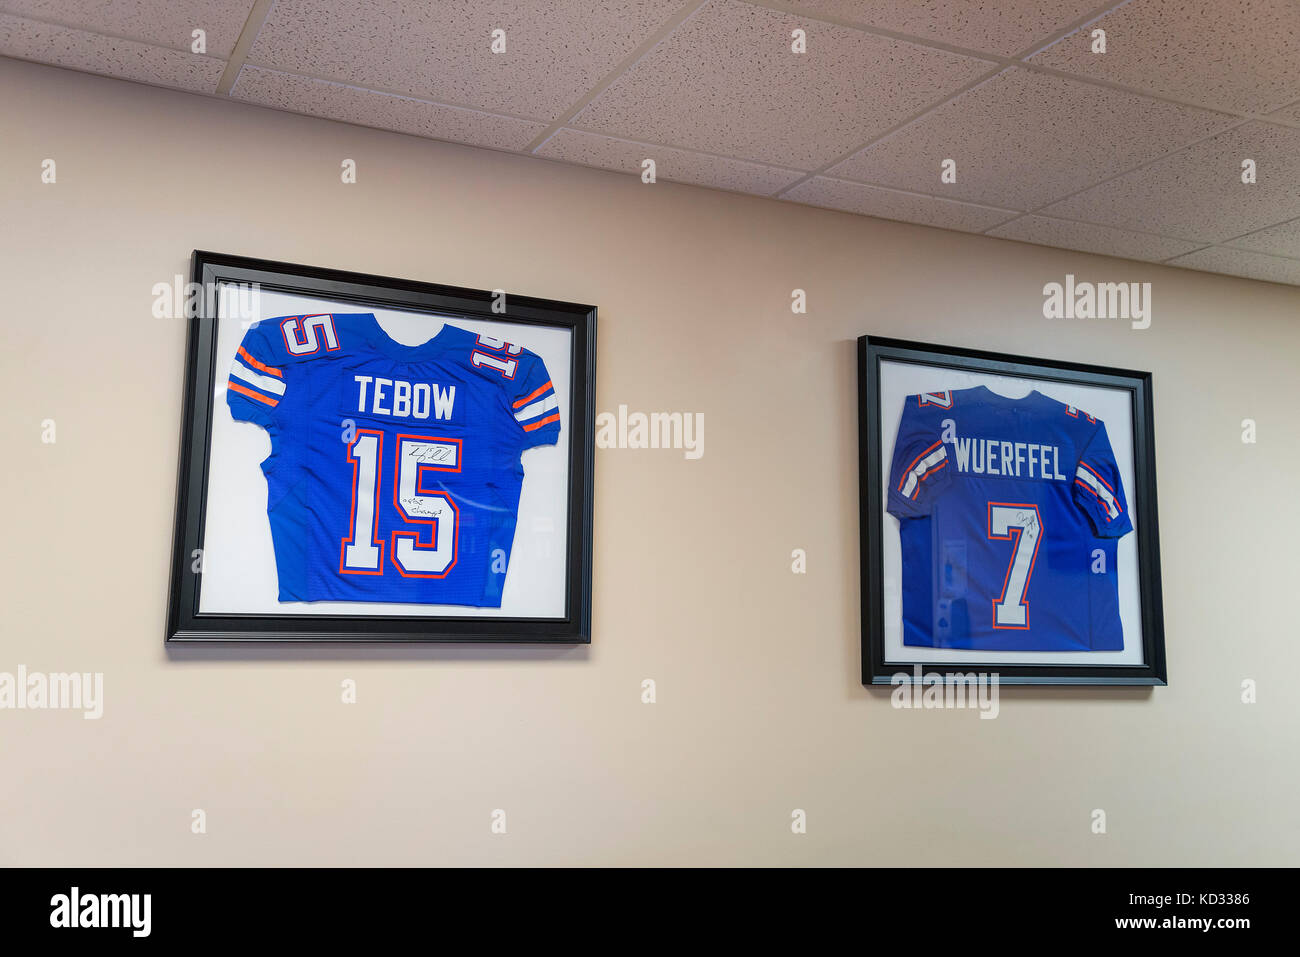 Tim Tebow and Danny Wuerffel signed football jerseys on display in an office. - Stock Image